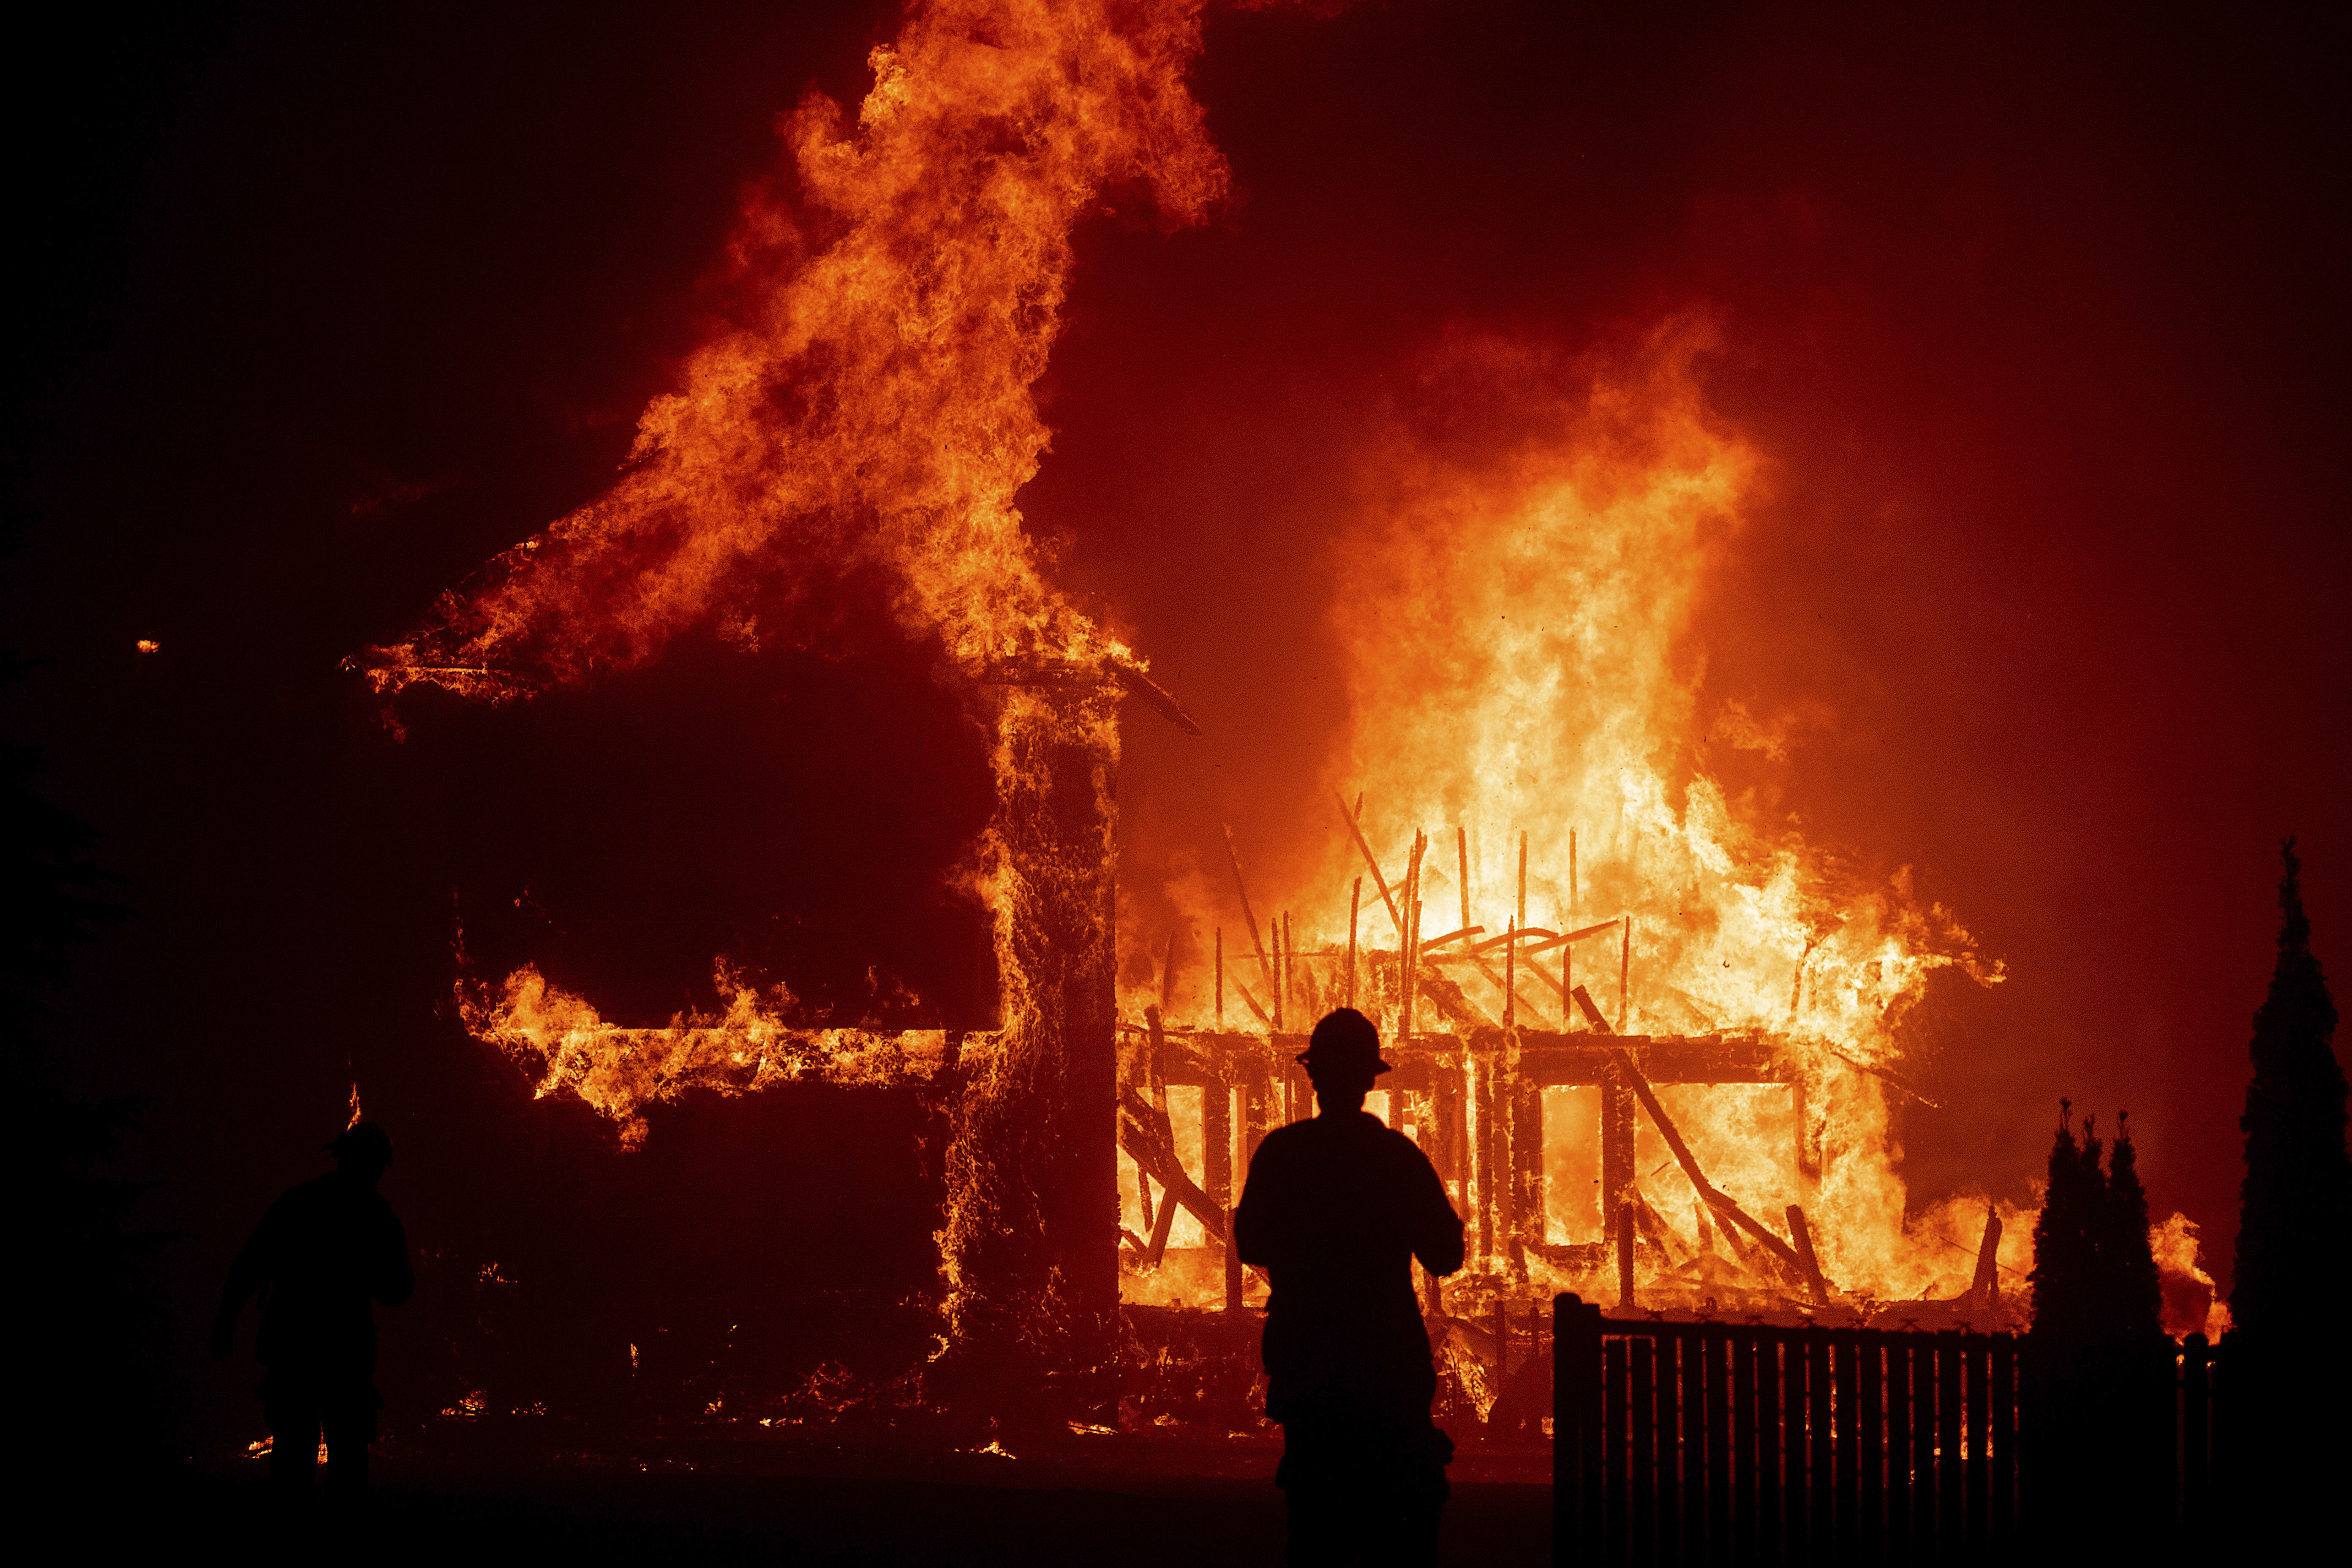 California wildfires down 90 percent this year